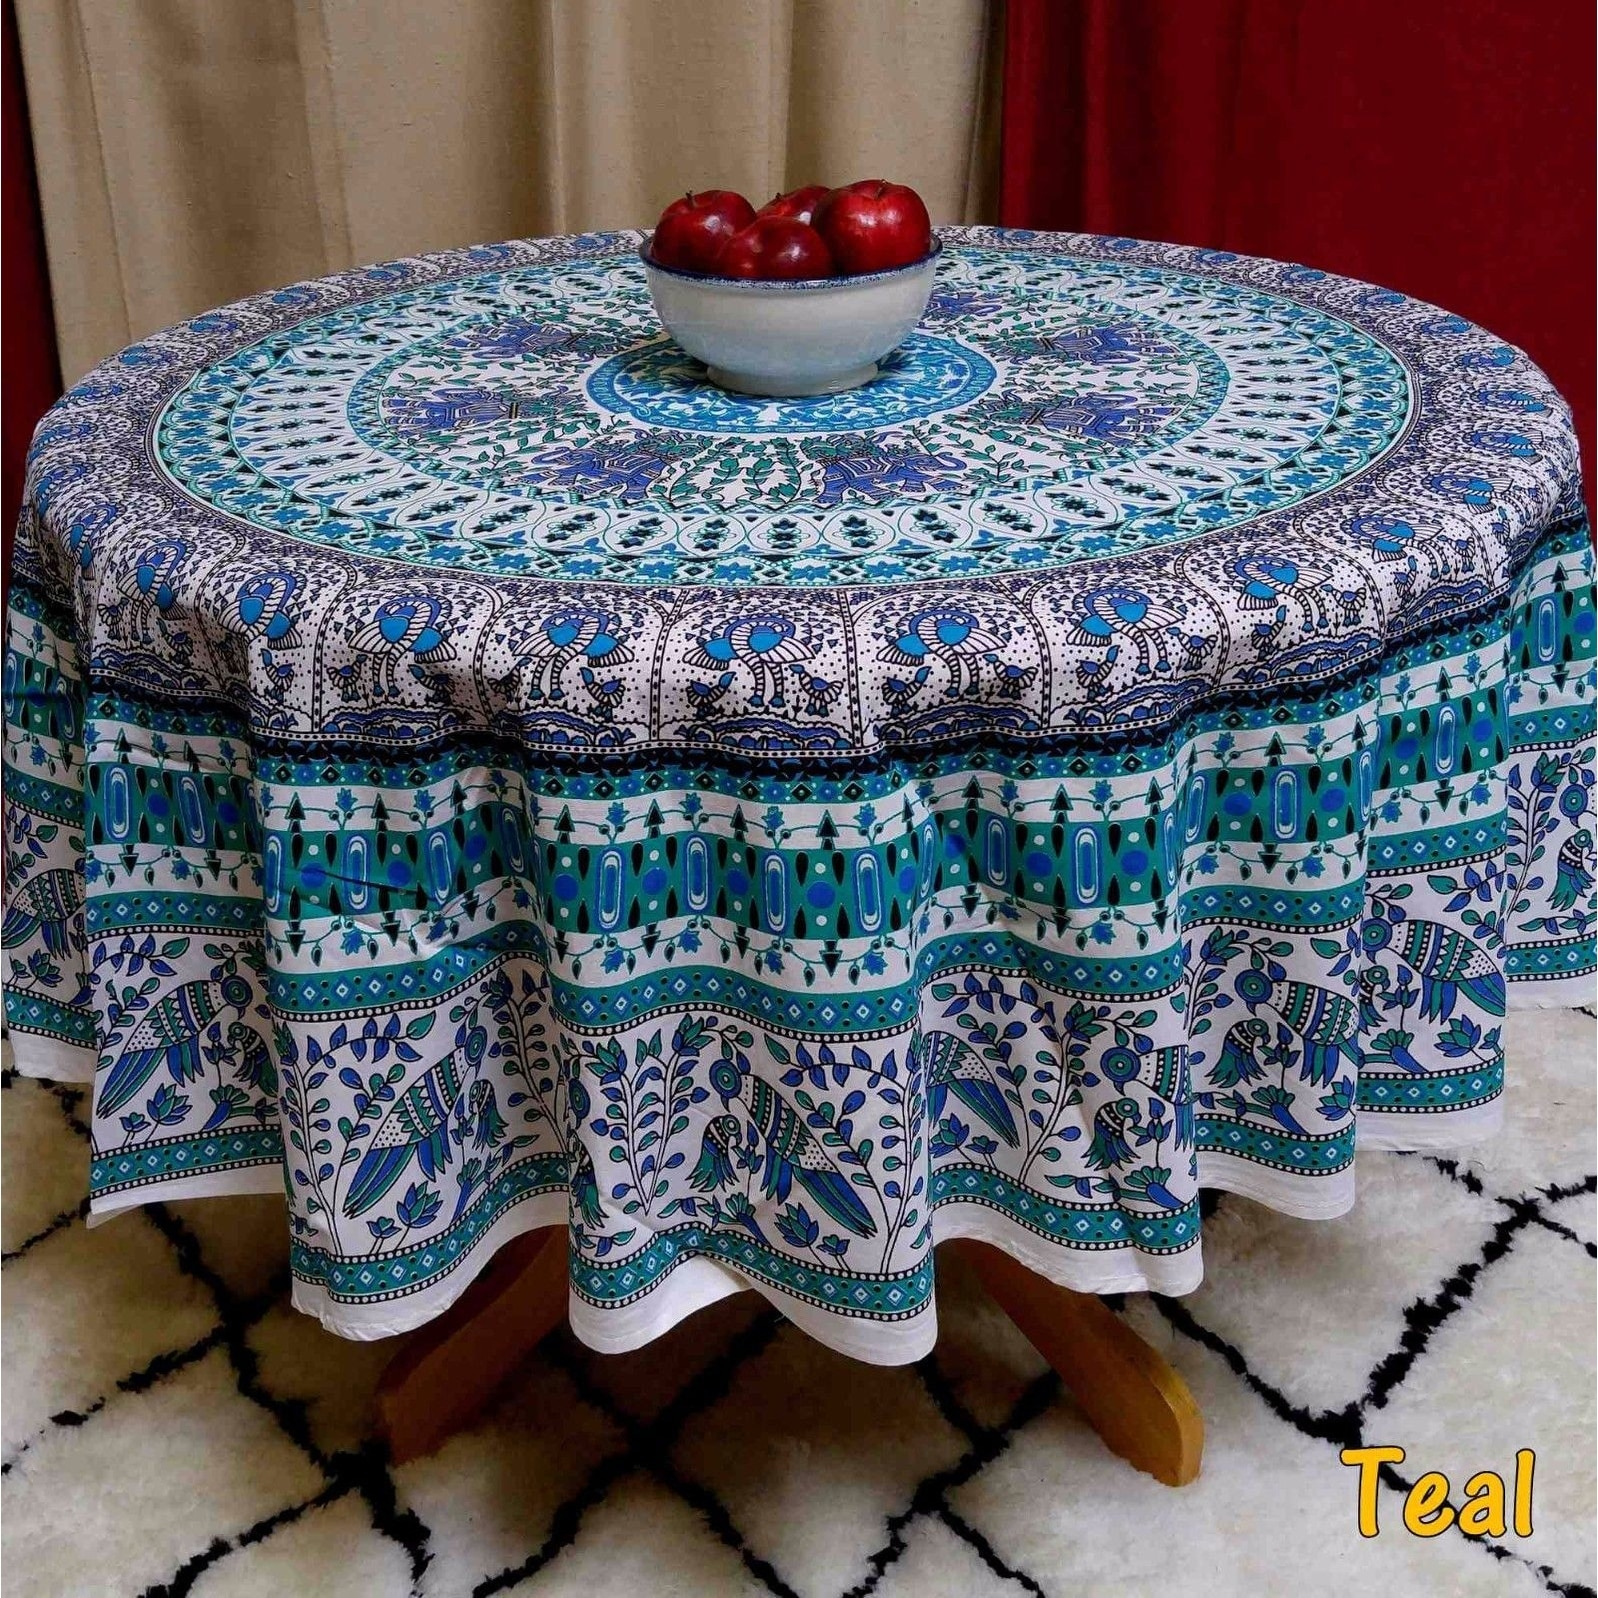 "Handmade Elephant and Peacock Print 100% Cotton Tablecloth 69"" Round Blue Green Red Teal - Thumbnail 10"